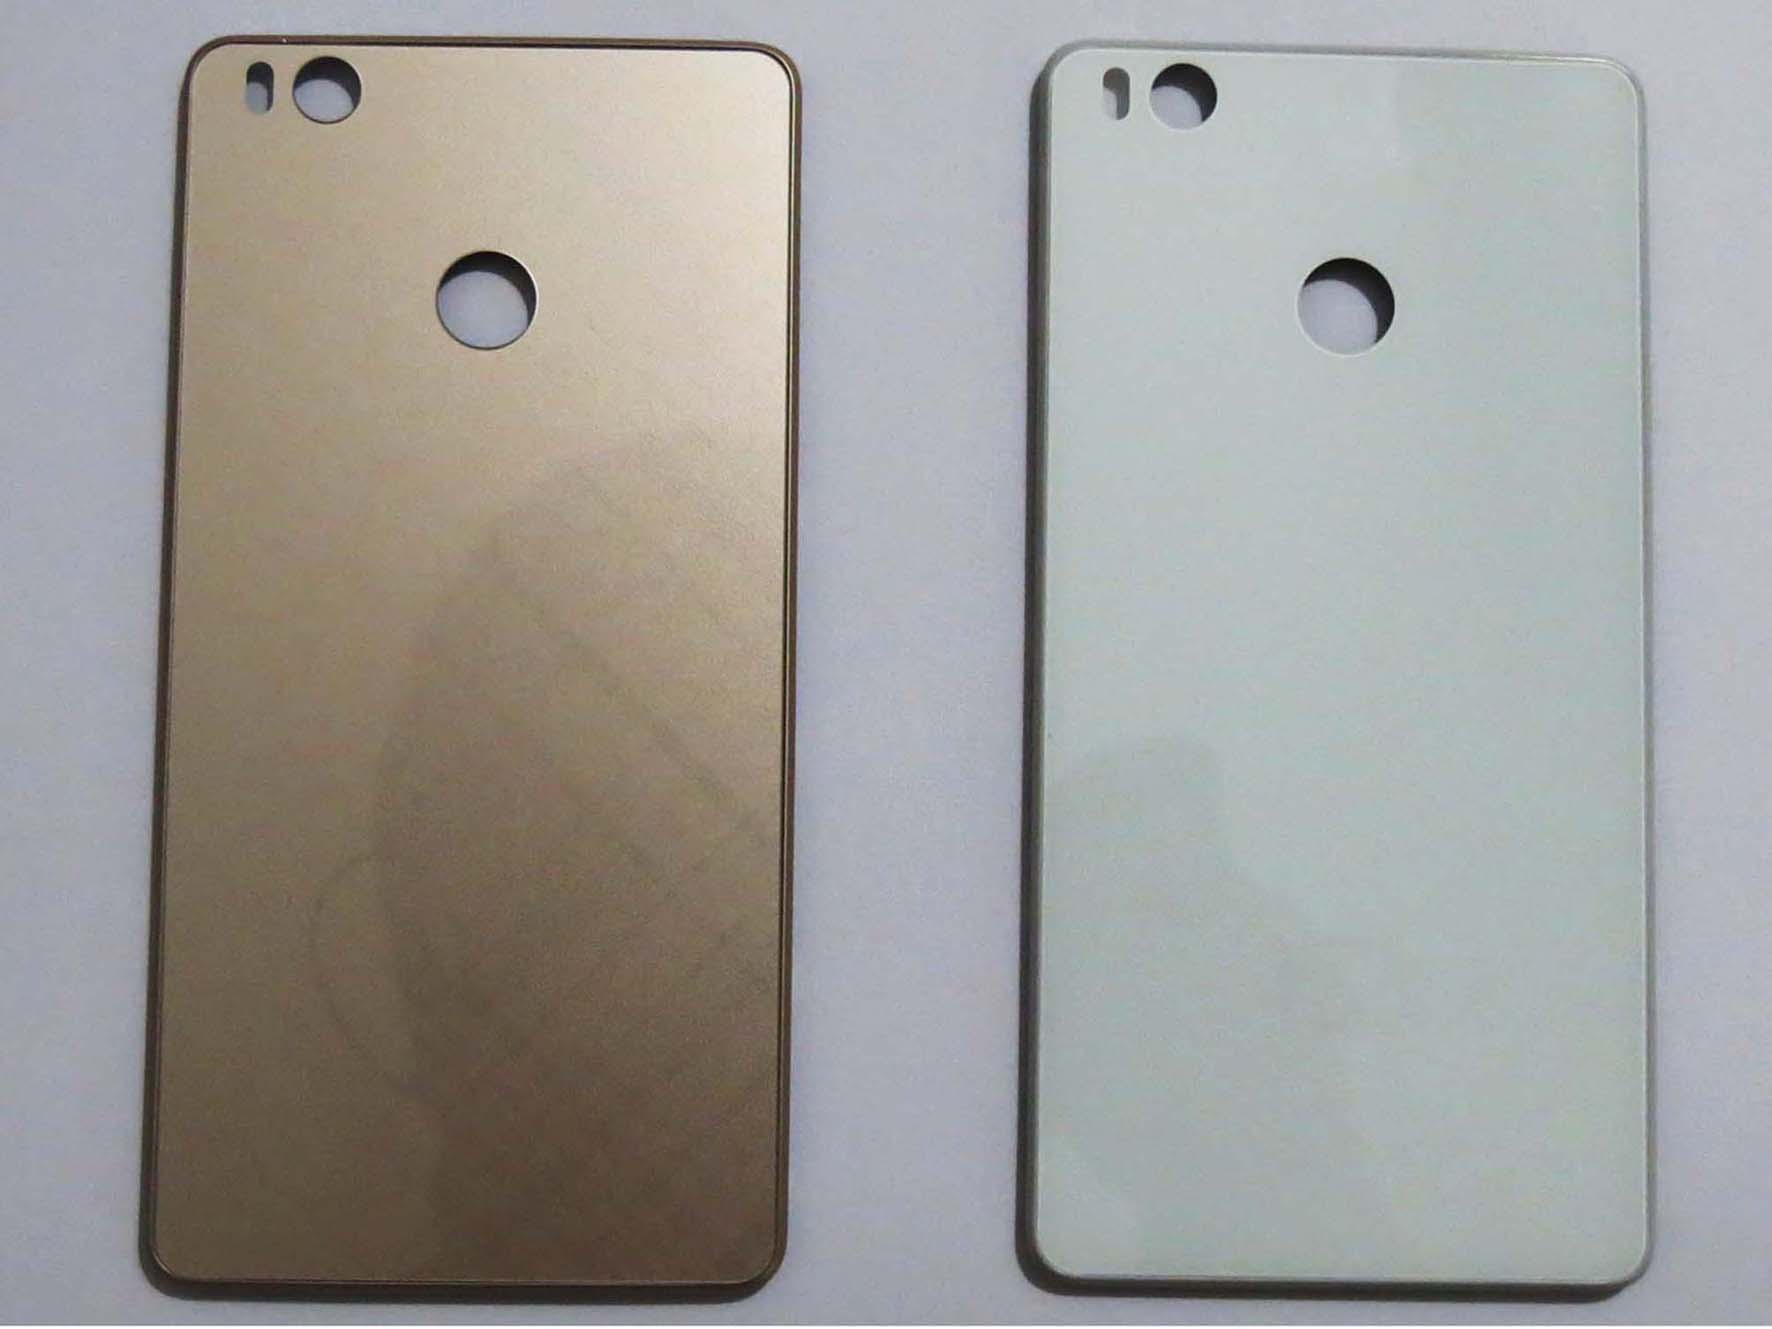 OEM Battery Cover Back Housing Cover for xiaomi 4s mi 4s – gold & white